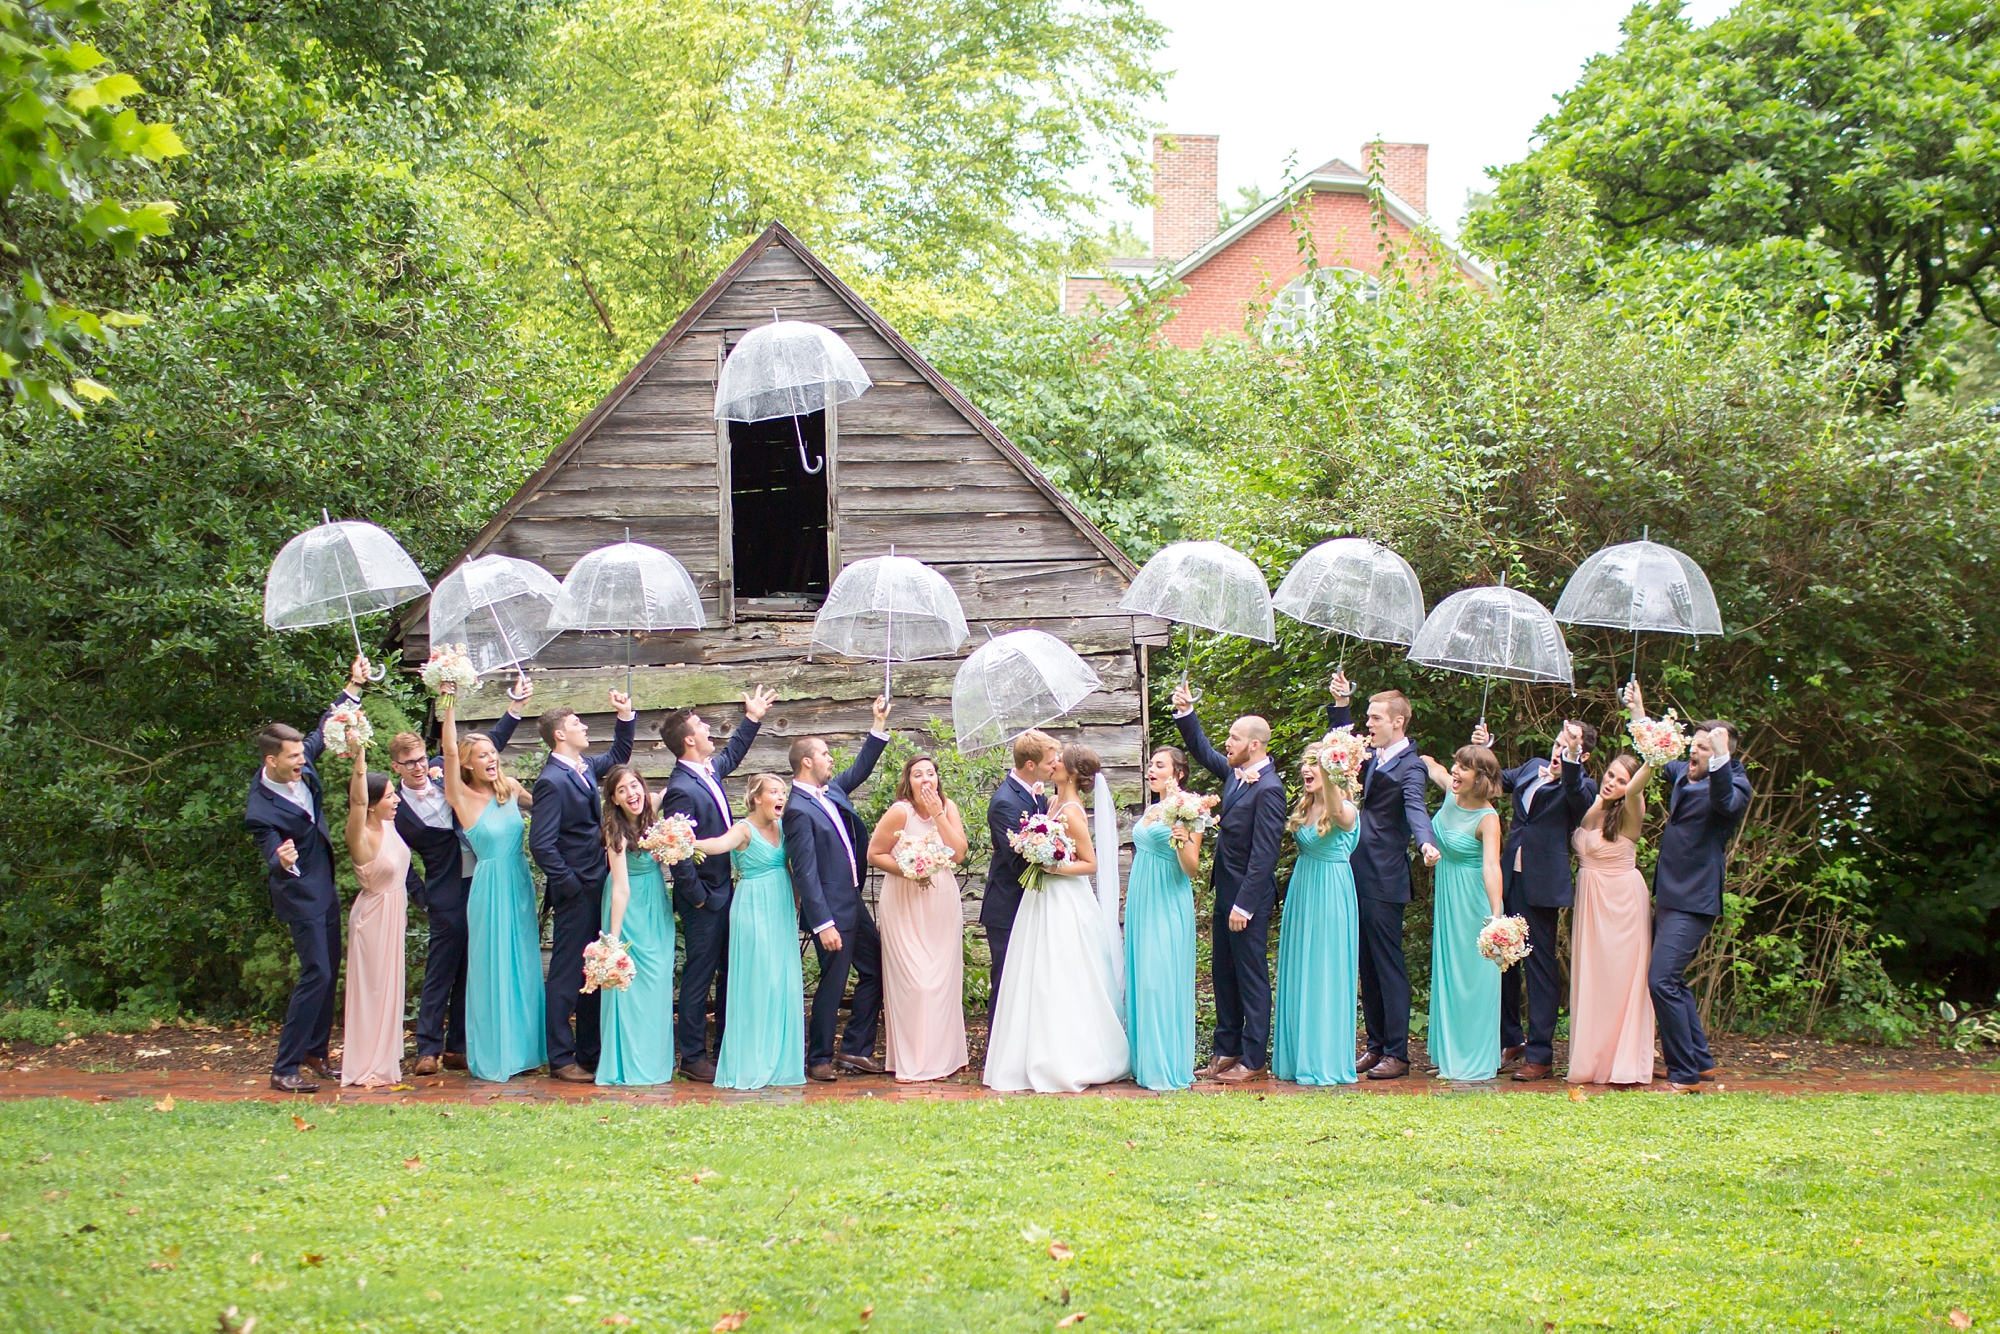 Russell 2-Bridal Party-723_anna grace photography baltimore maryland wedding photographer elkridge furnace inn wedding photo.jpg